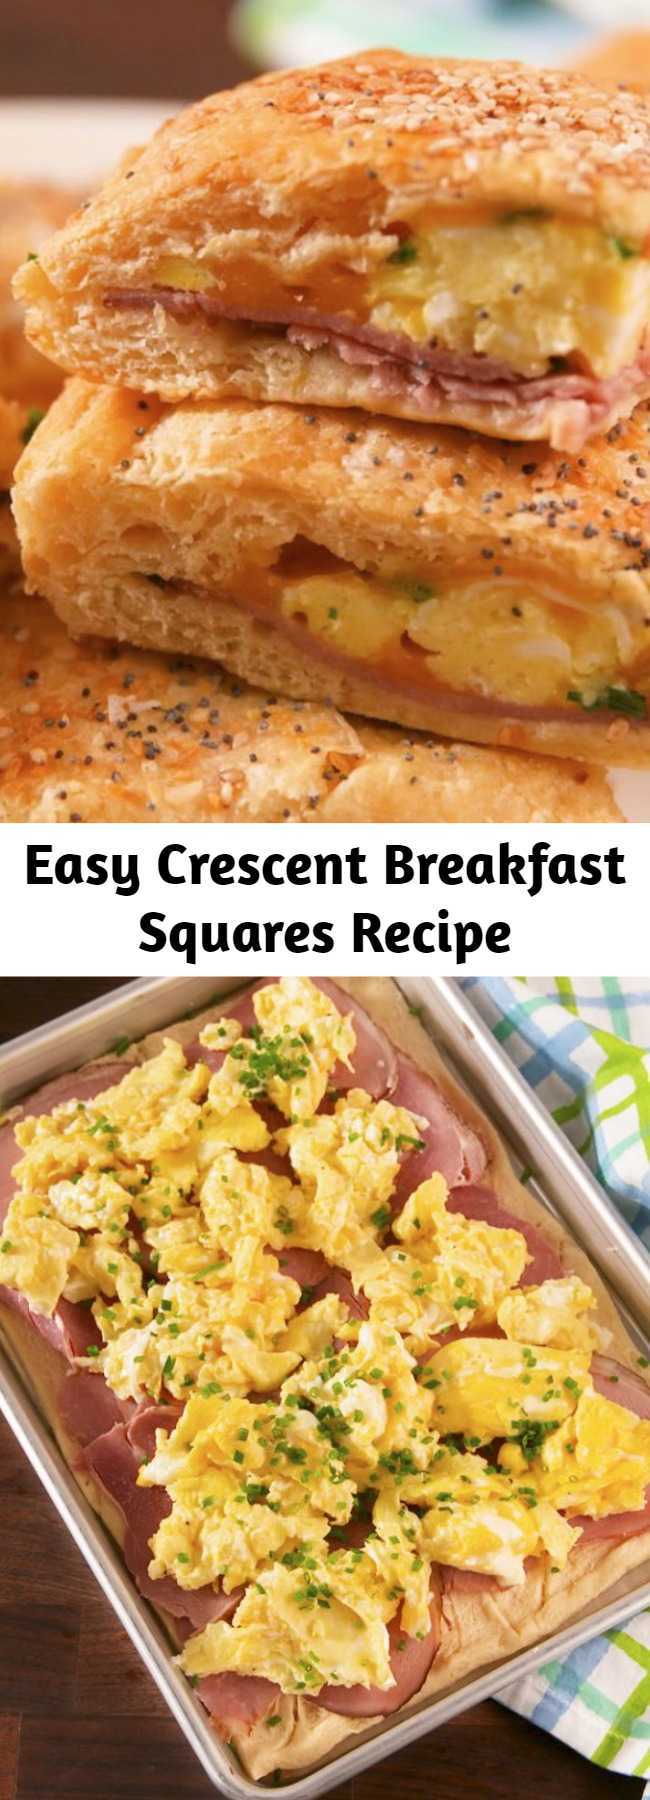 Easy Crescent Breakfast Squares Recipe - We love ourselves a good crescent dough hack, and this one is one of our faves. Look for dough you can buy as a full sheet (as opposed to the kind with perforated edges). It's not totally necessary, but it'll make things easier to assemble. #easy #recipe #eggs #cheese #crescentdough #dough #breakfast #brunch #ham #sheetpan #squares